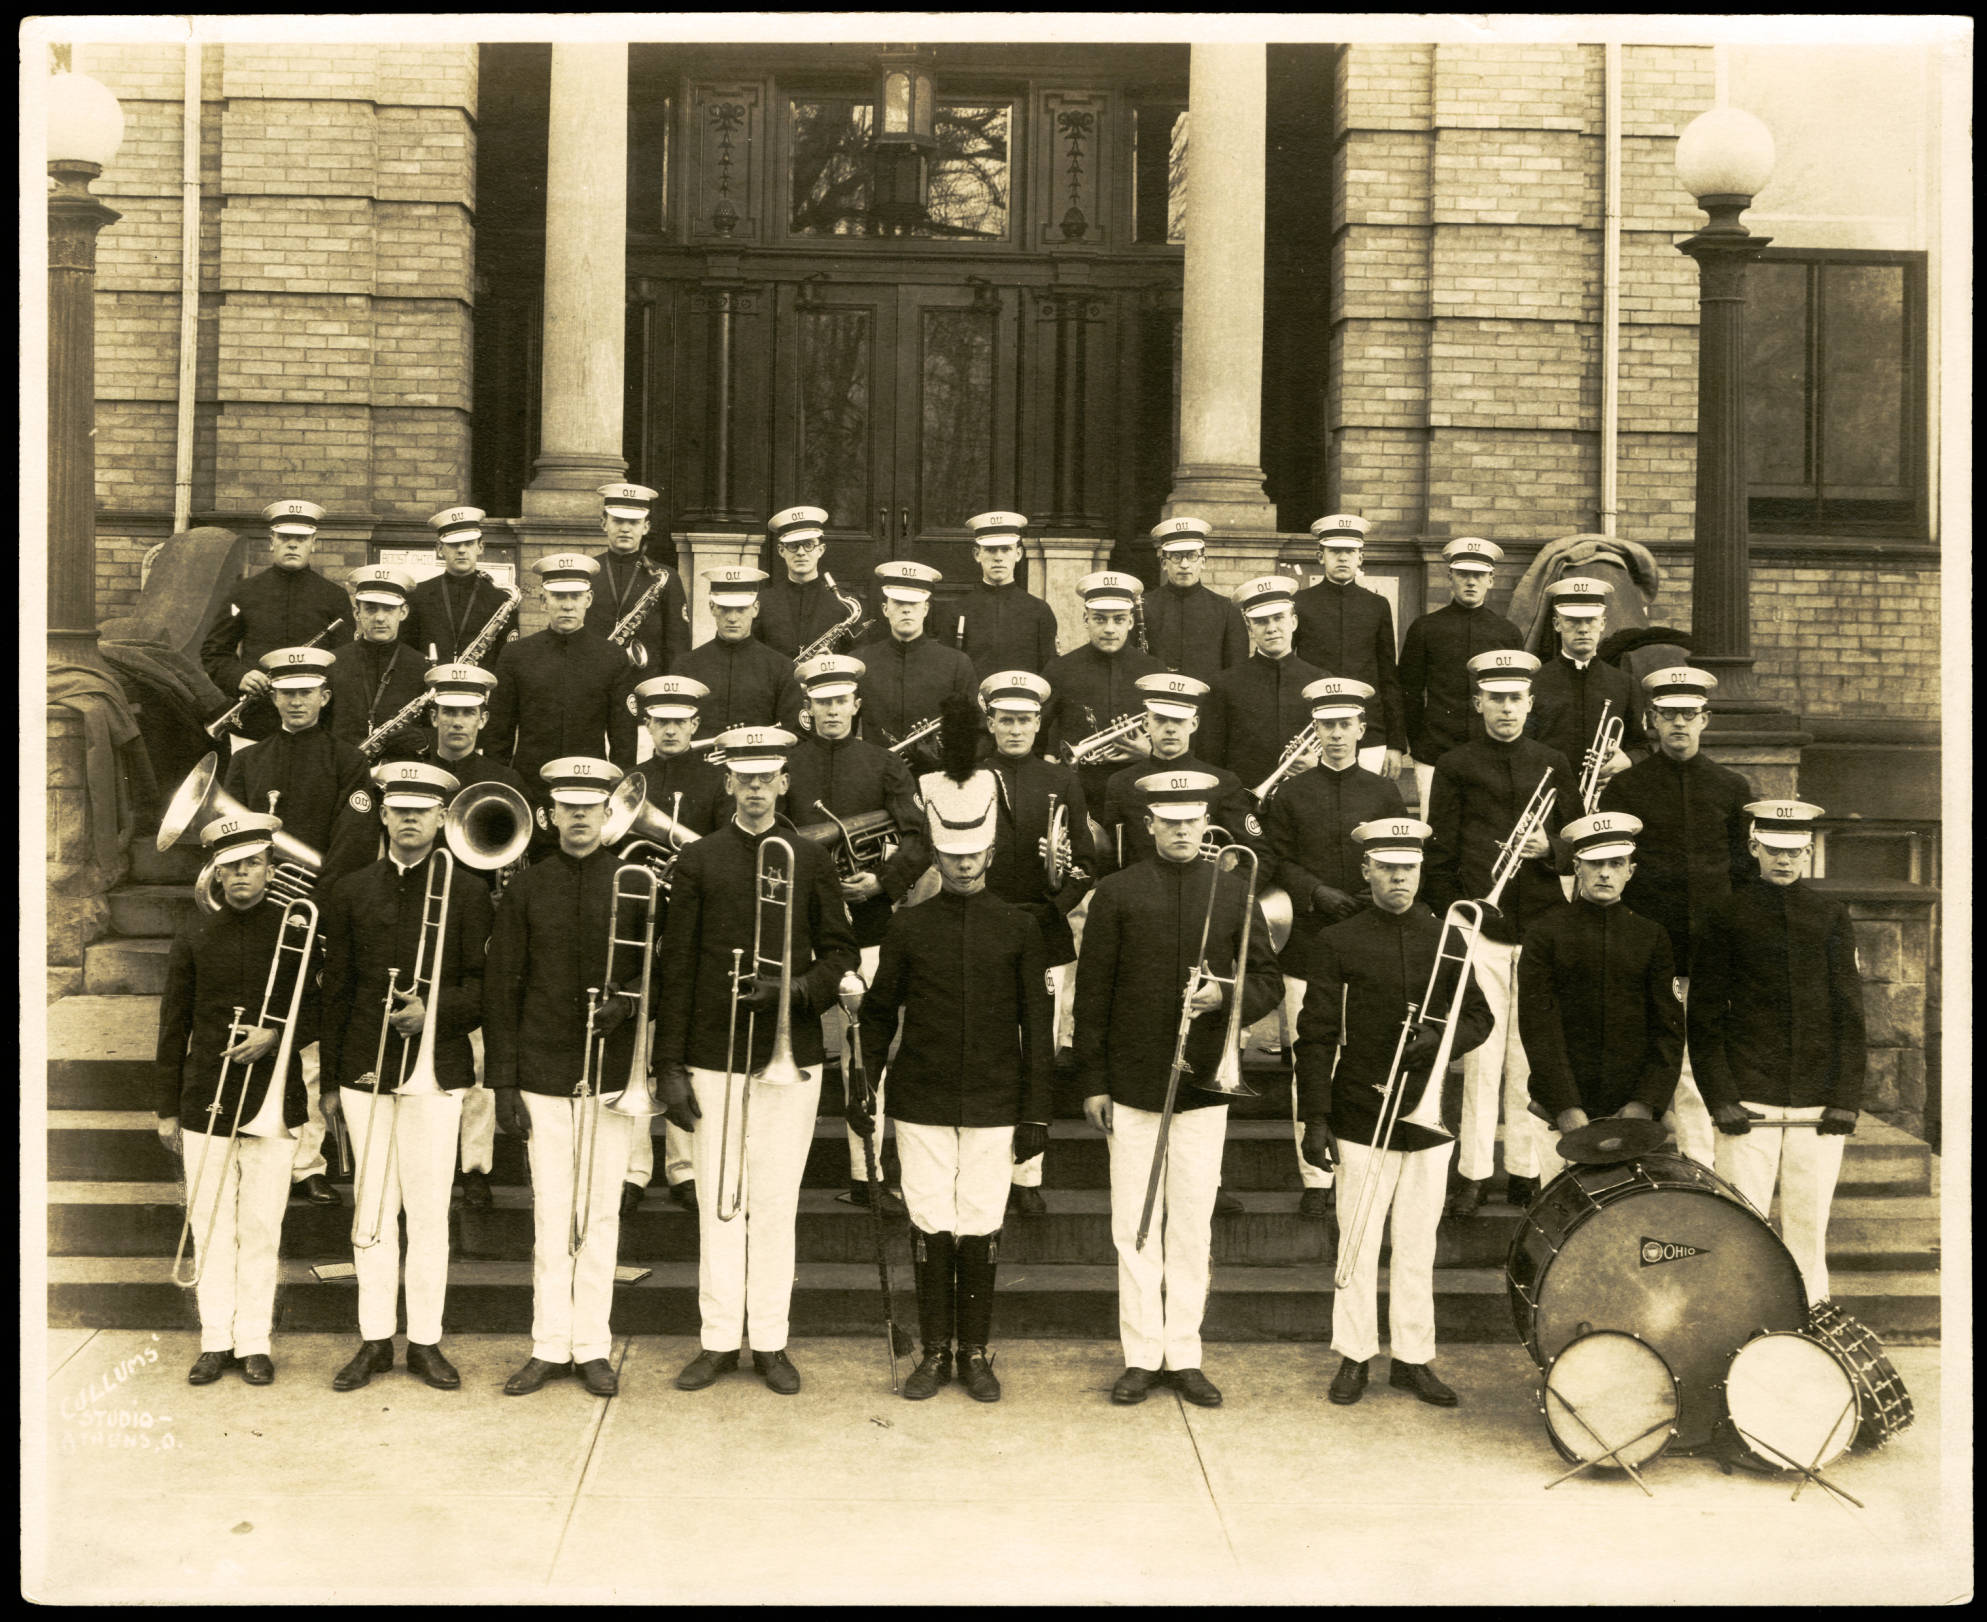 Ohio University's first ever band stands on the steps of Ewing Hall in 1923. The original band of 33 members has grown into today, a group of 200+.(COURTESY OF OHIO UNIVERSITY LIBRARY DIGITAL COLLECTION)